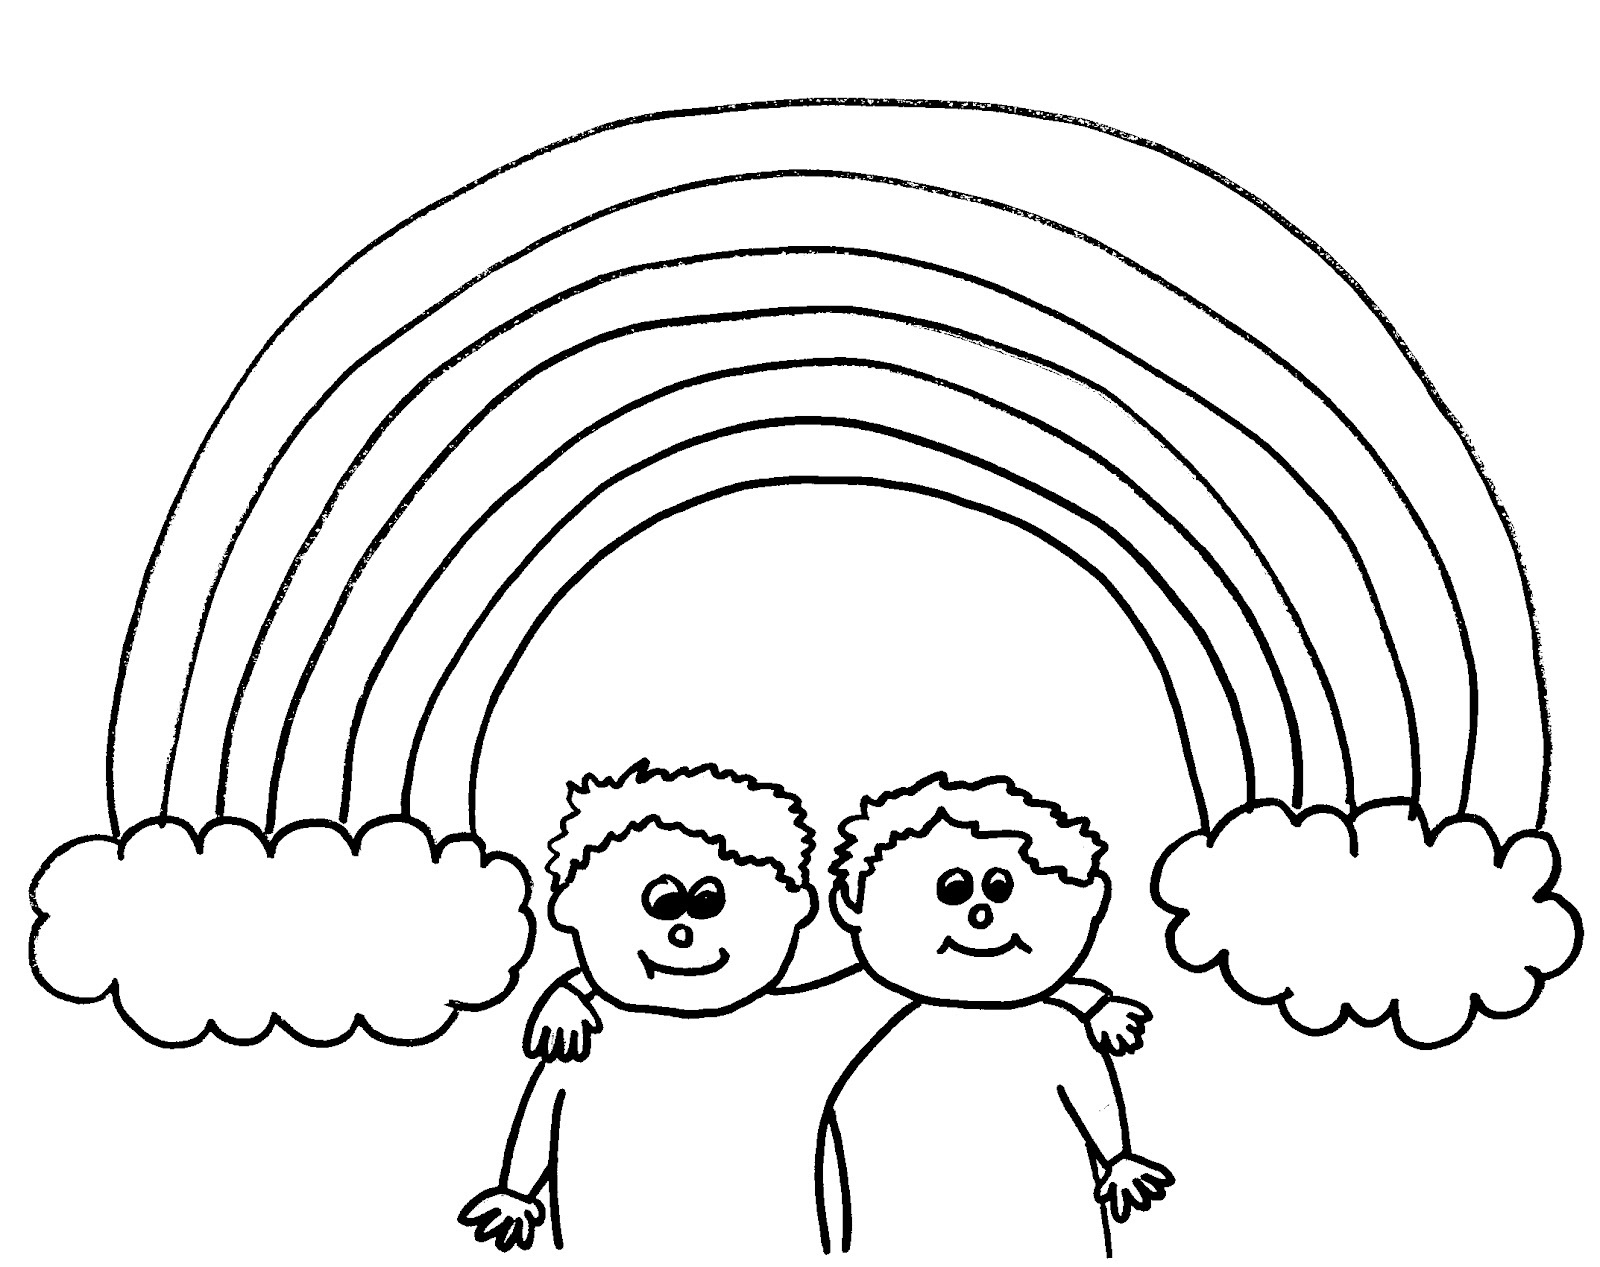 Rainbow Coloring Page Simple Free Printable Rainbow Coloring Pages For Kids Review